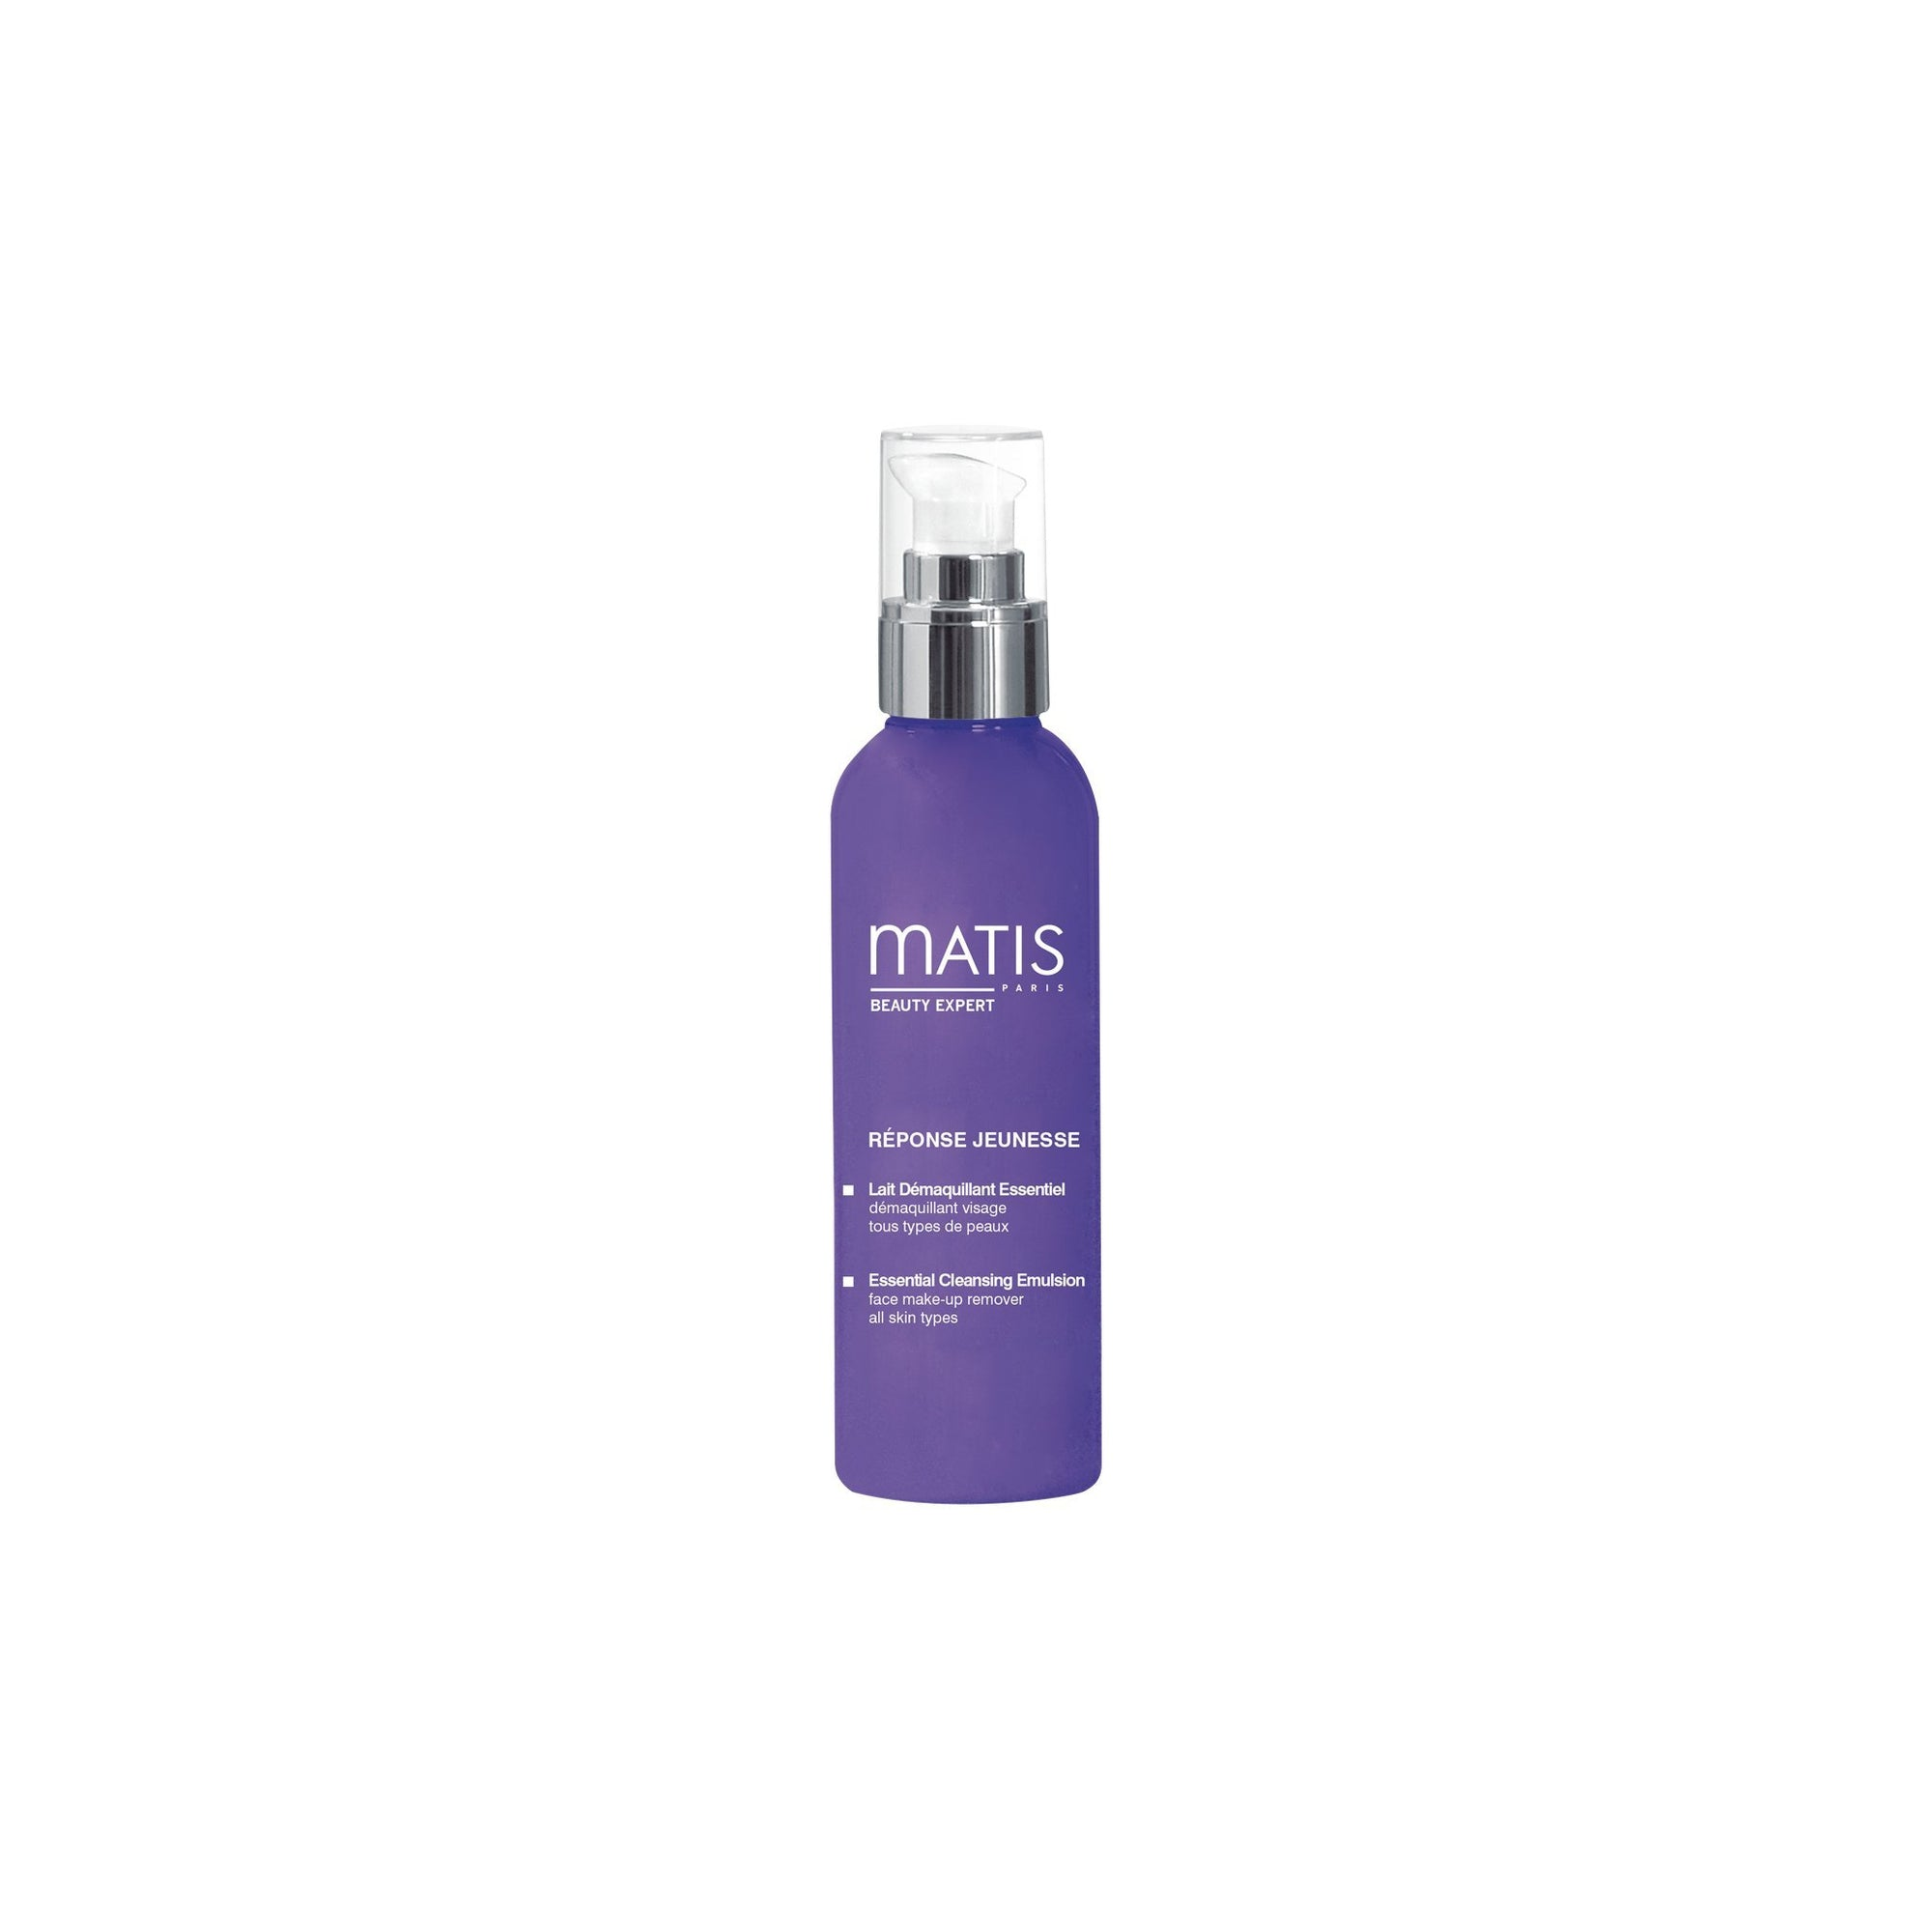 Matis Youth Response Essential Cleansing Emulsion 200ml